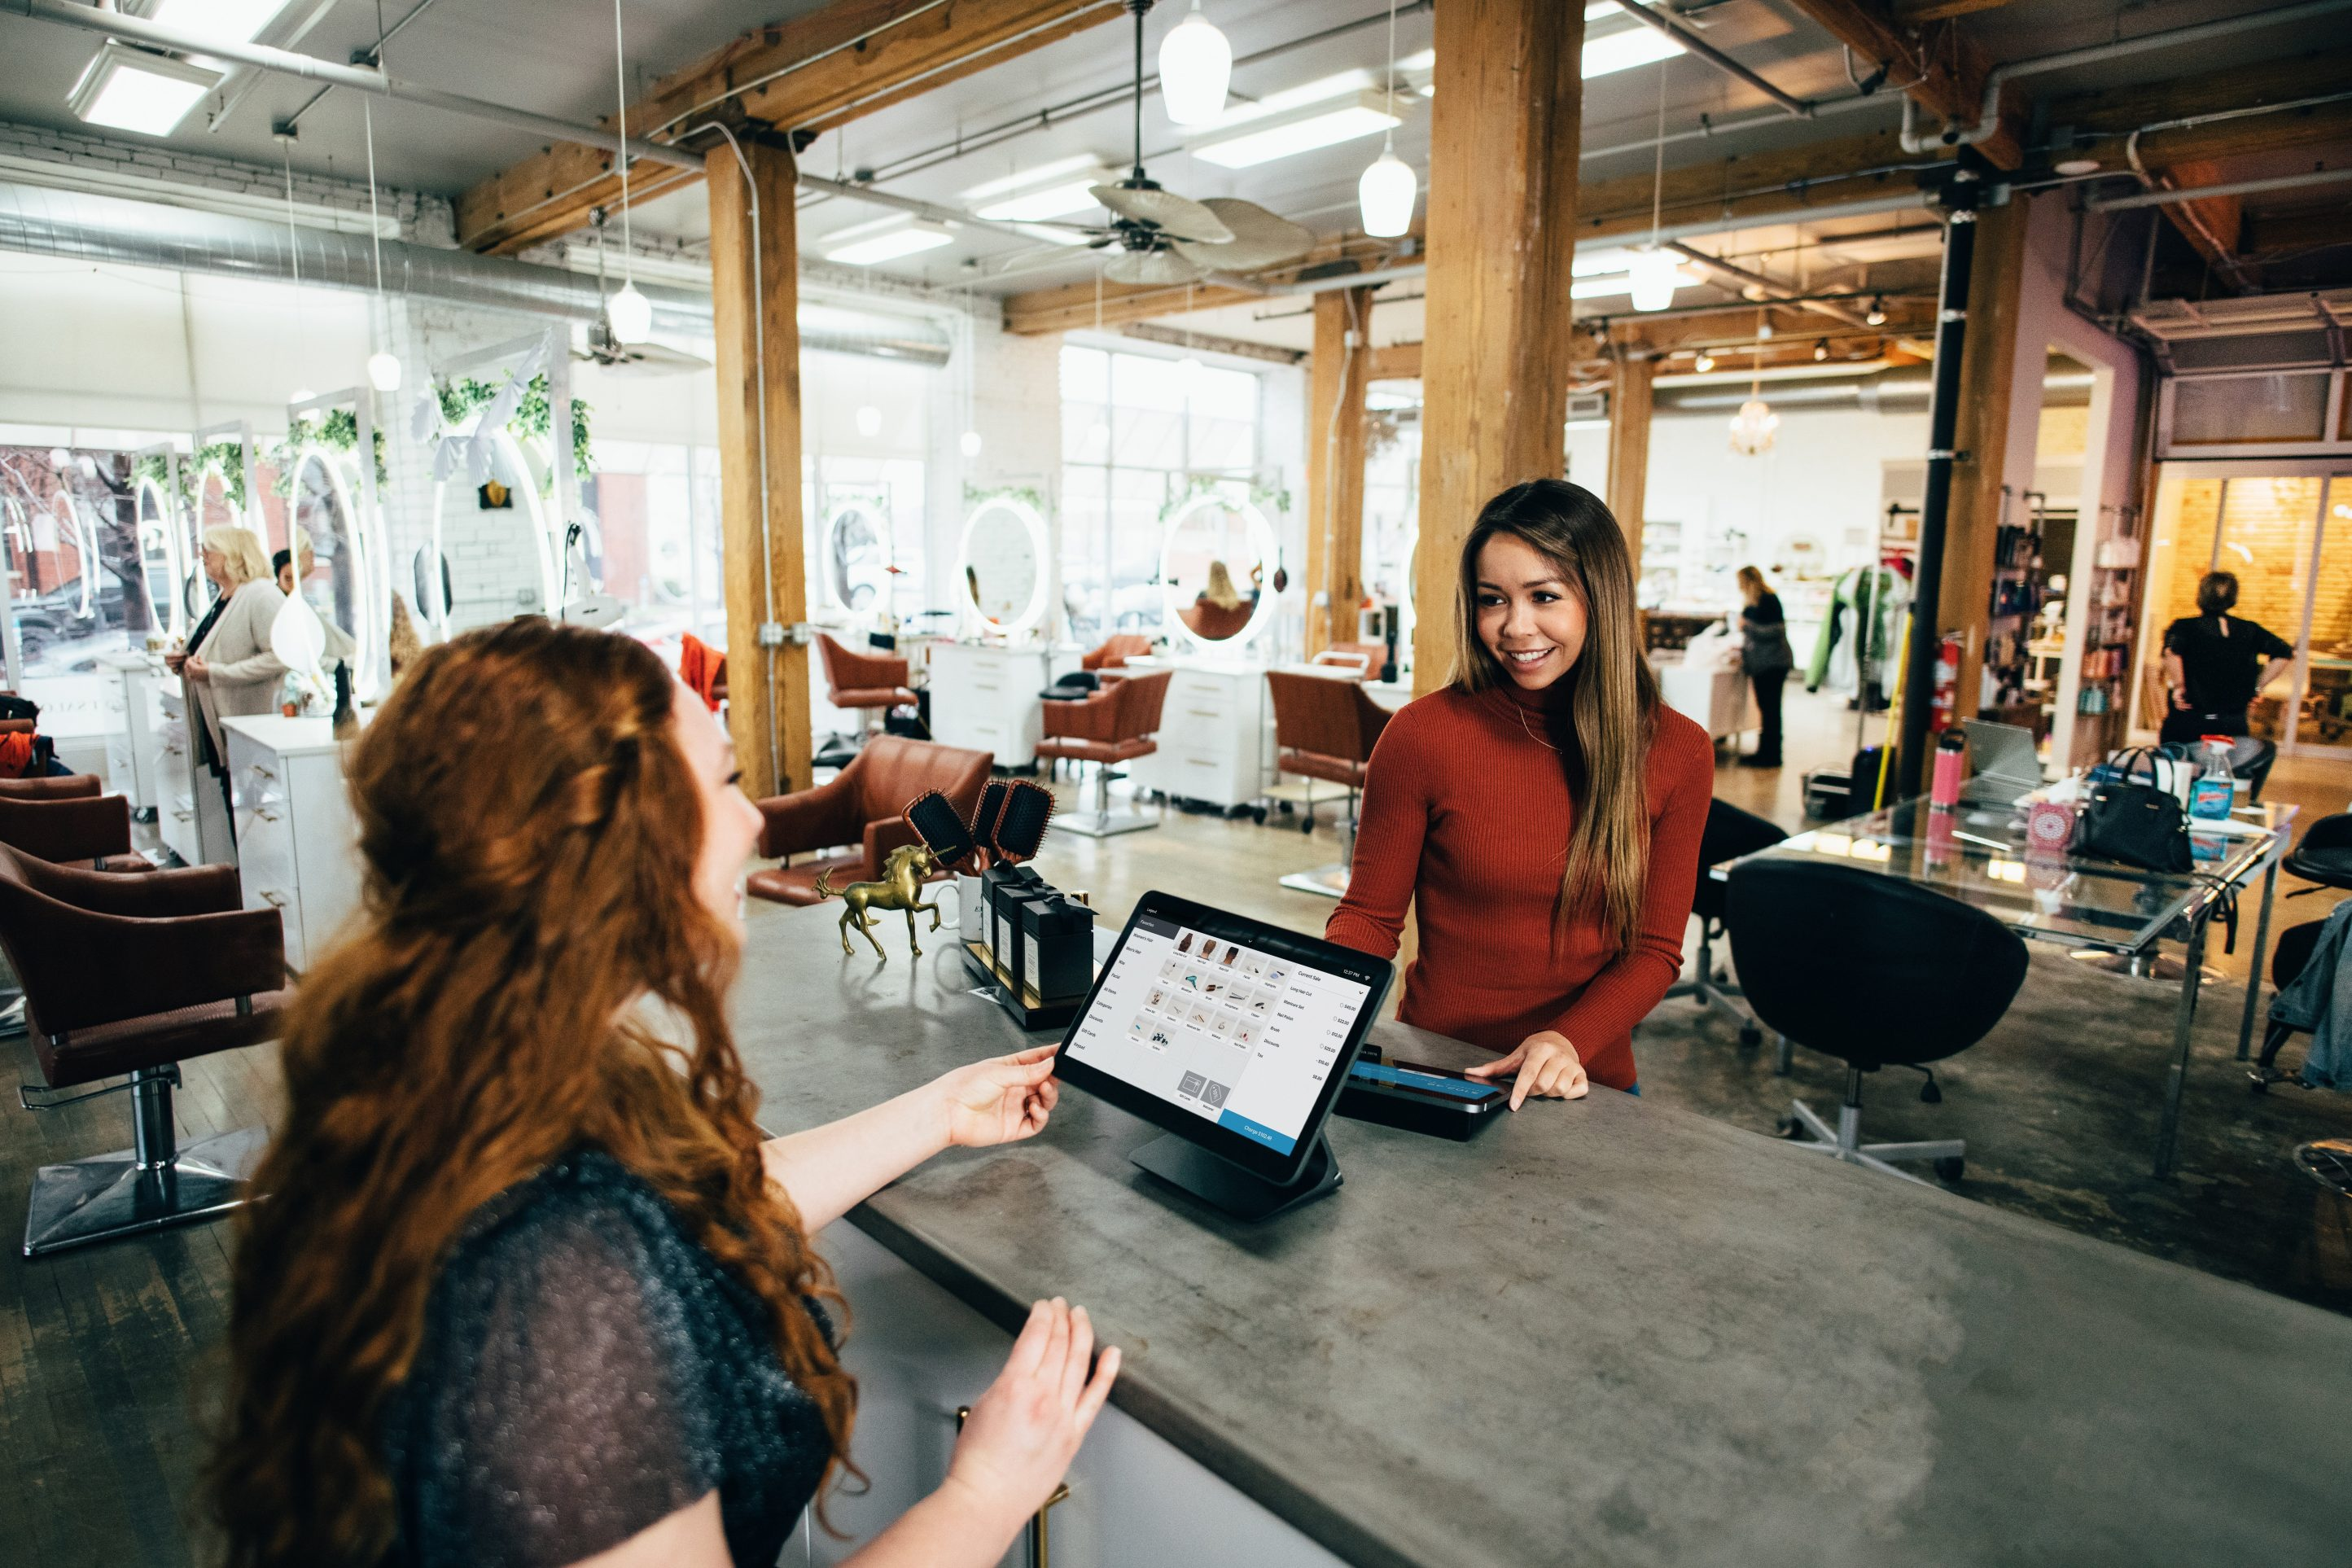 Two women at a Point of Sale transaction